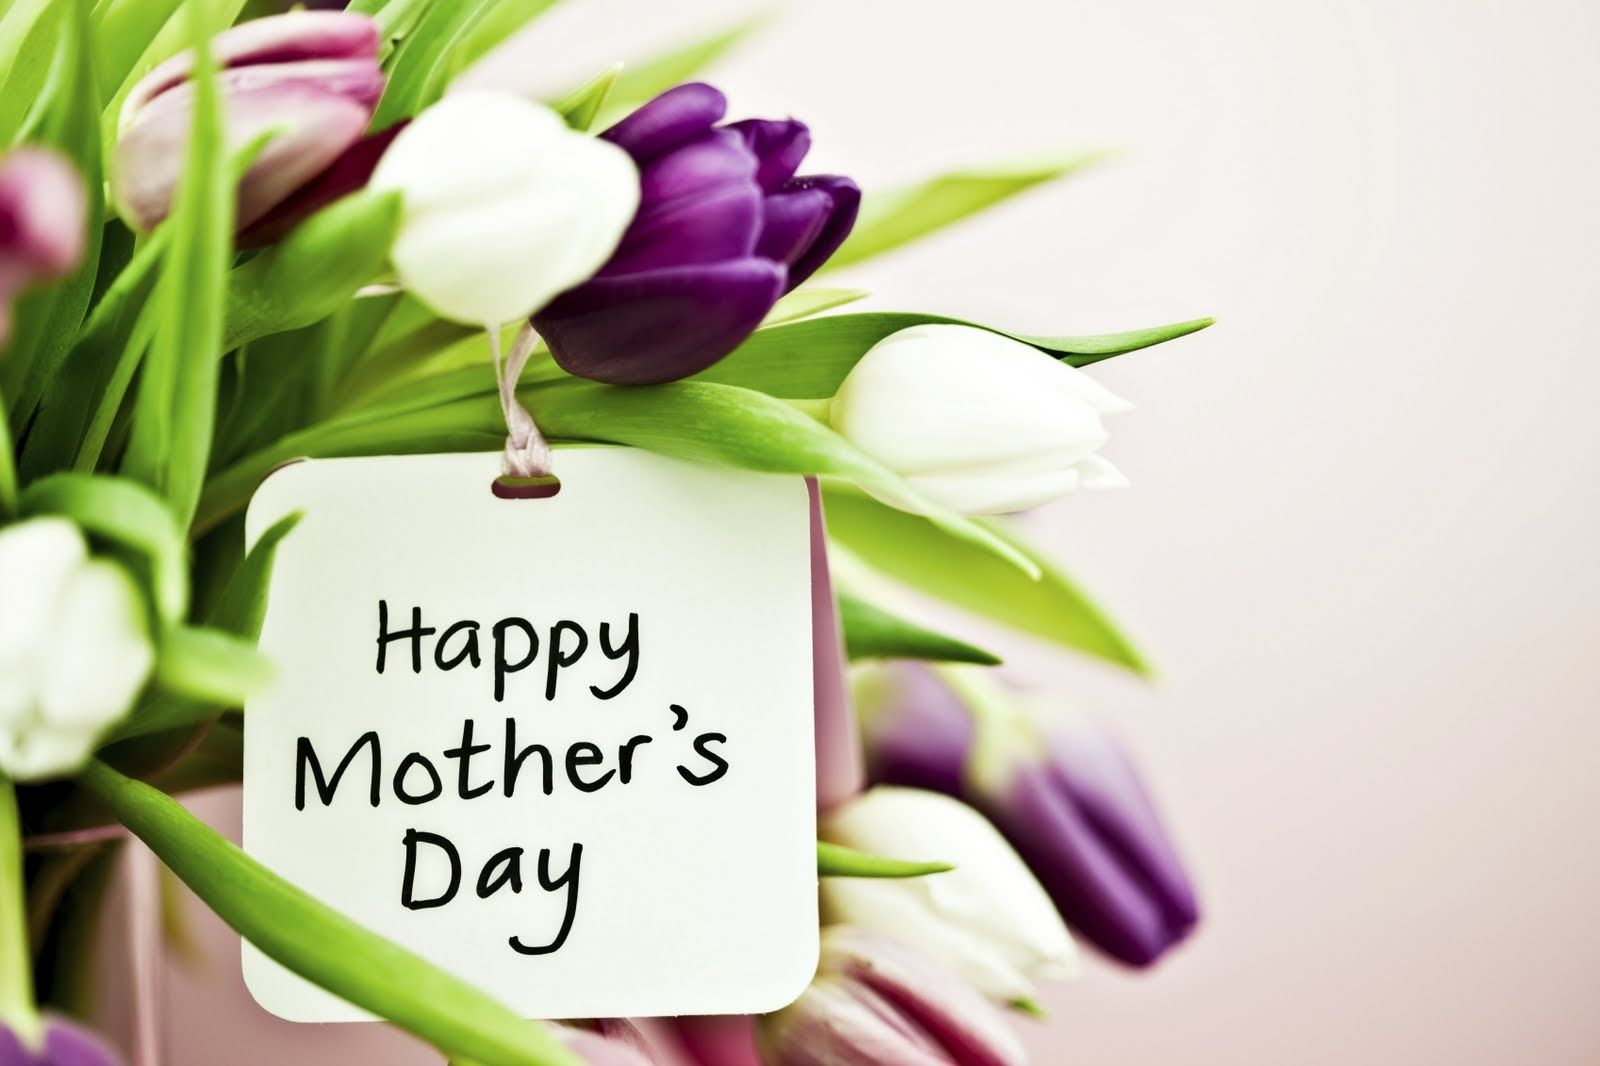 Happymothersdaygreetingsquotes mothers day greeting from the happymothersdaygreetingsquotes mothers day greeting from the principal m4hsunfo